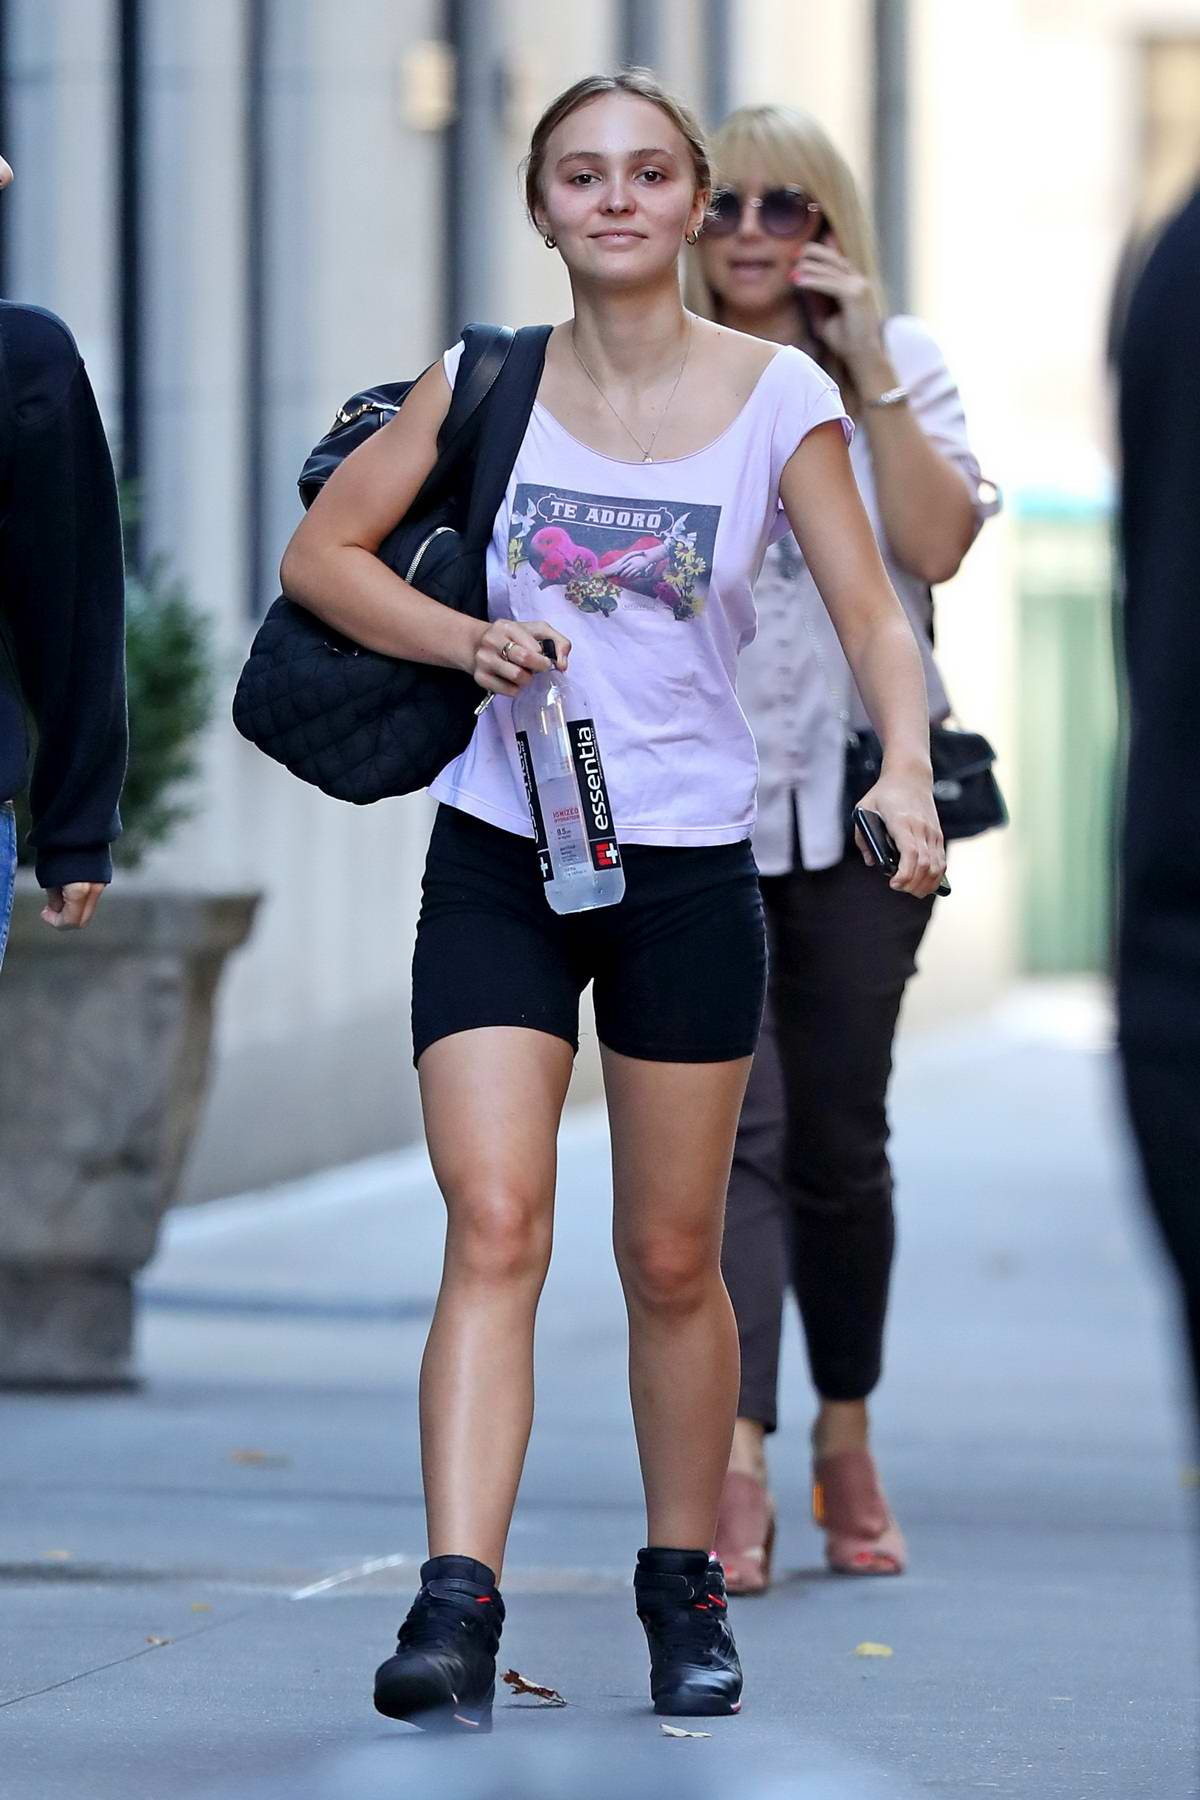 Lily-Rose Depp wears a graphic print top and black shorts while stepping out after a workout session in New York City